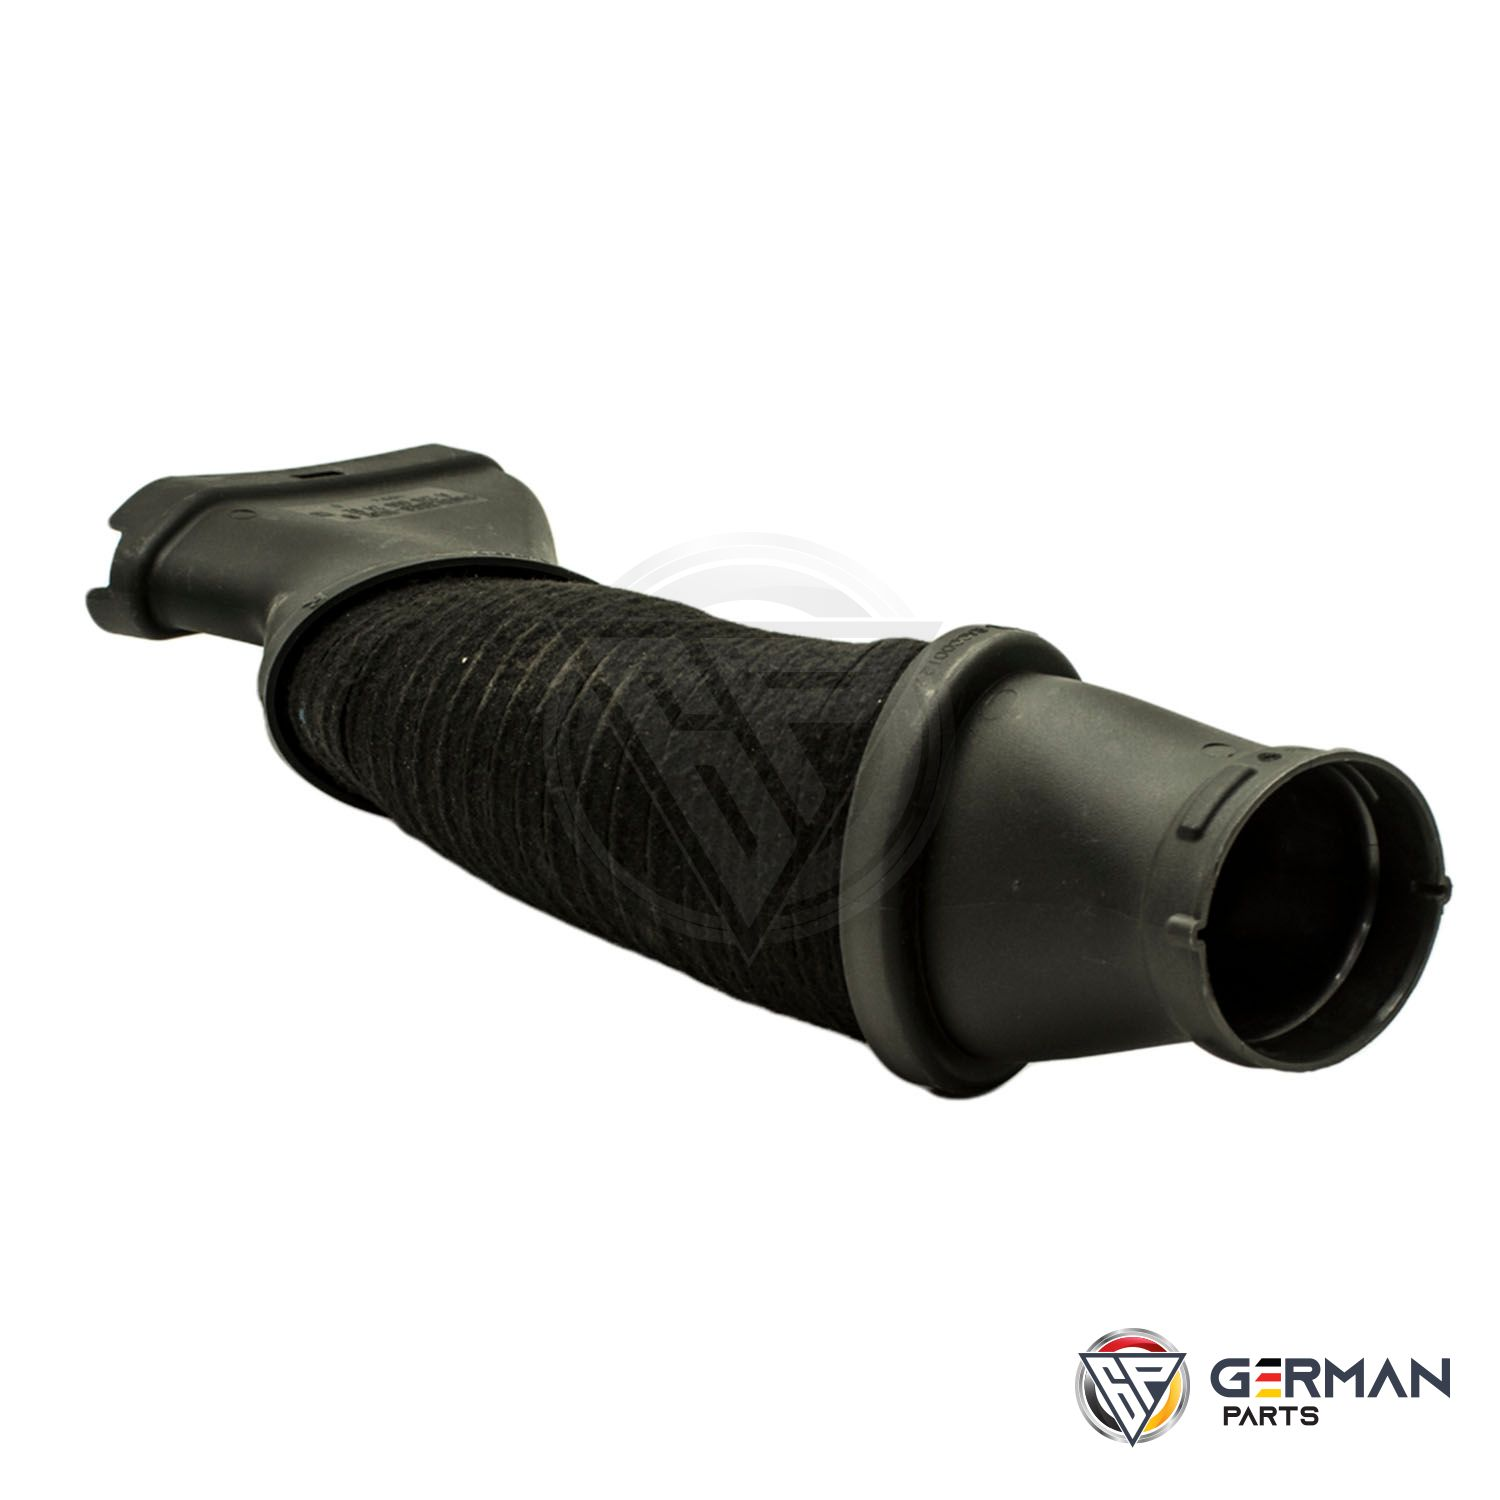 Buy Mercedes Benz Air Scoop Right 2780902482 - German Parts